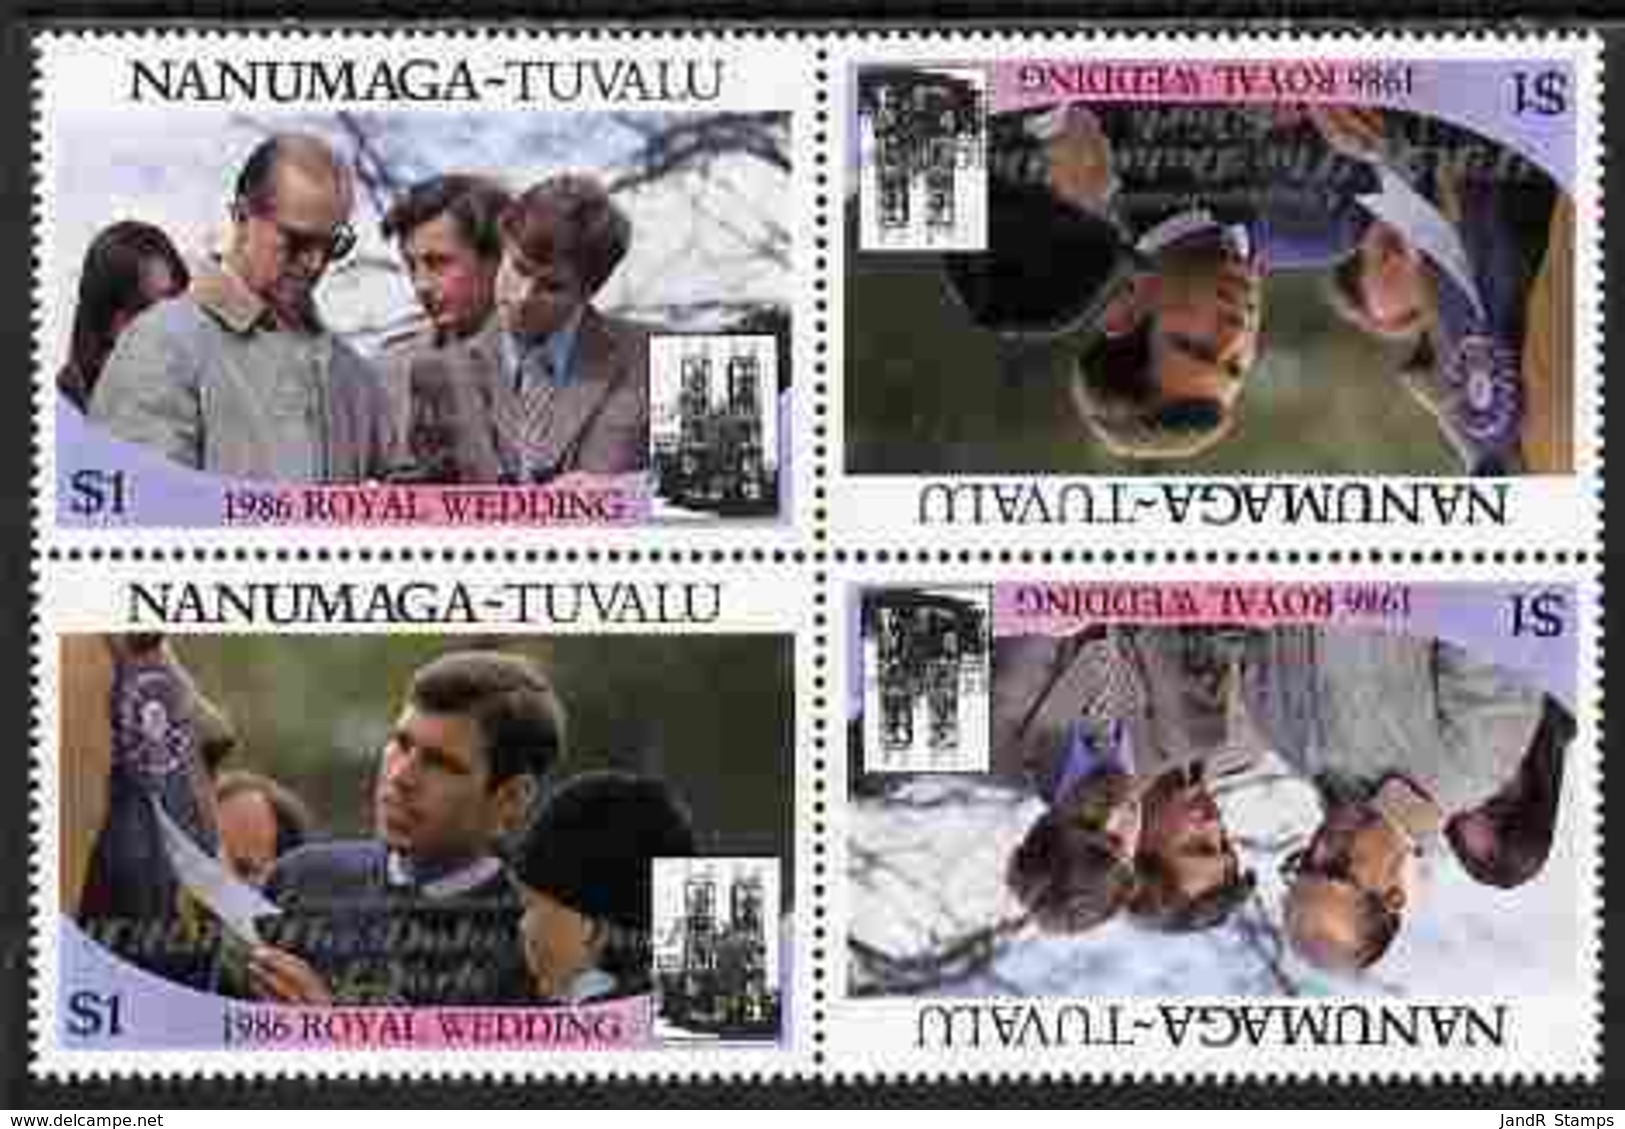 Tuvalu - Nanumaga 1986 Royal Wedding (Andrew & Fergie) $1 With 'Congratulations' Opt In Silver In Unissued Perf Tete-bec - Tuvalu